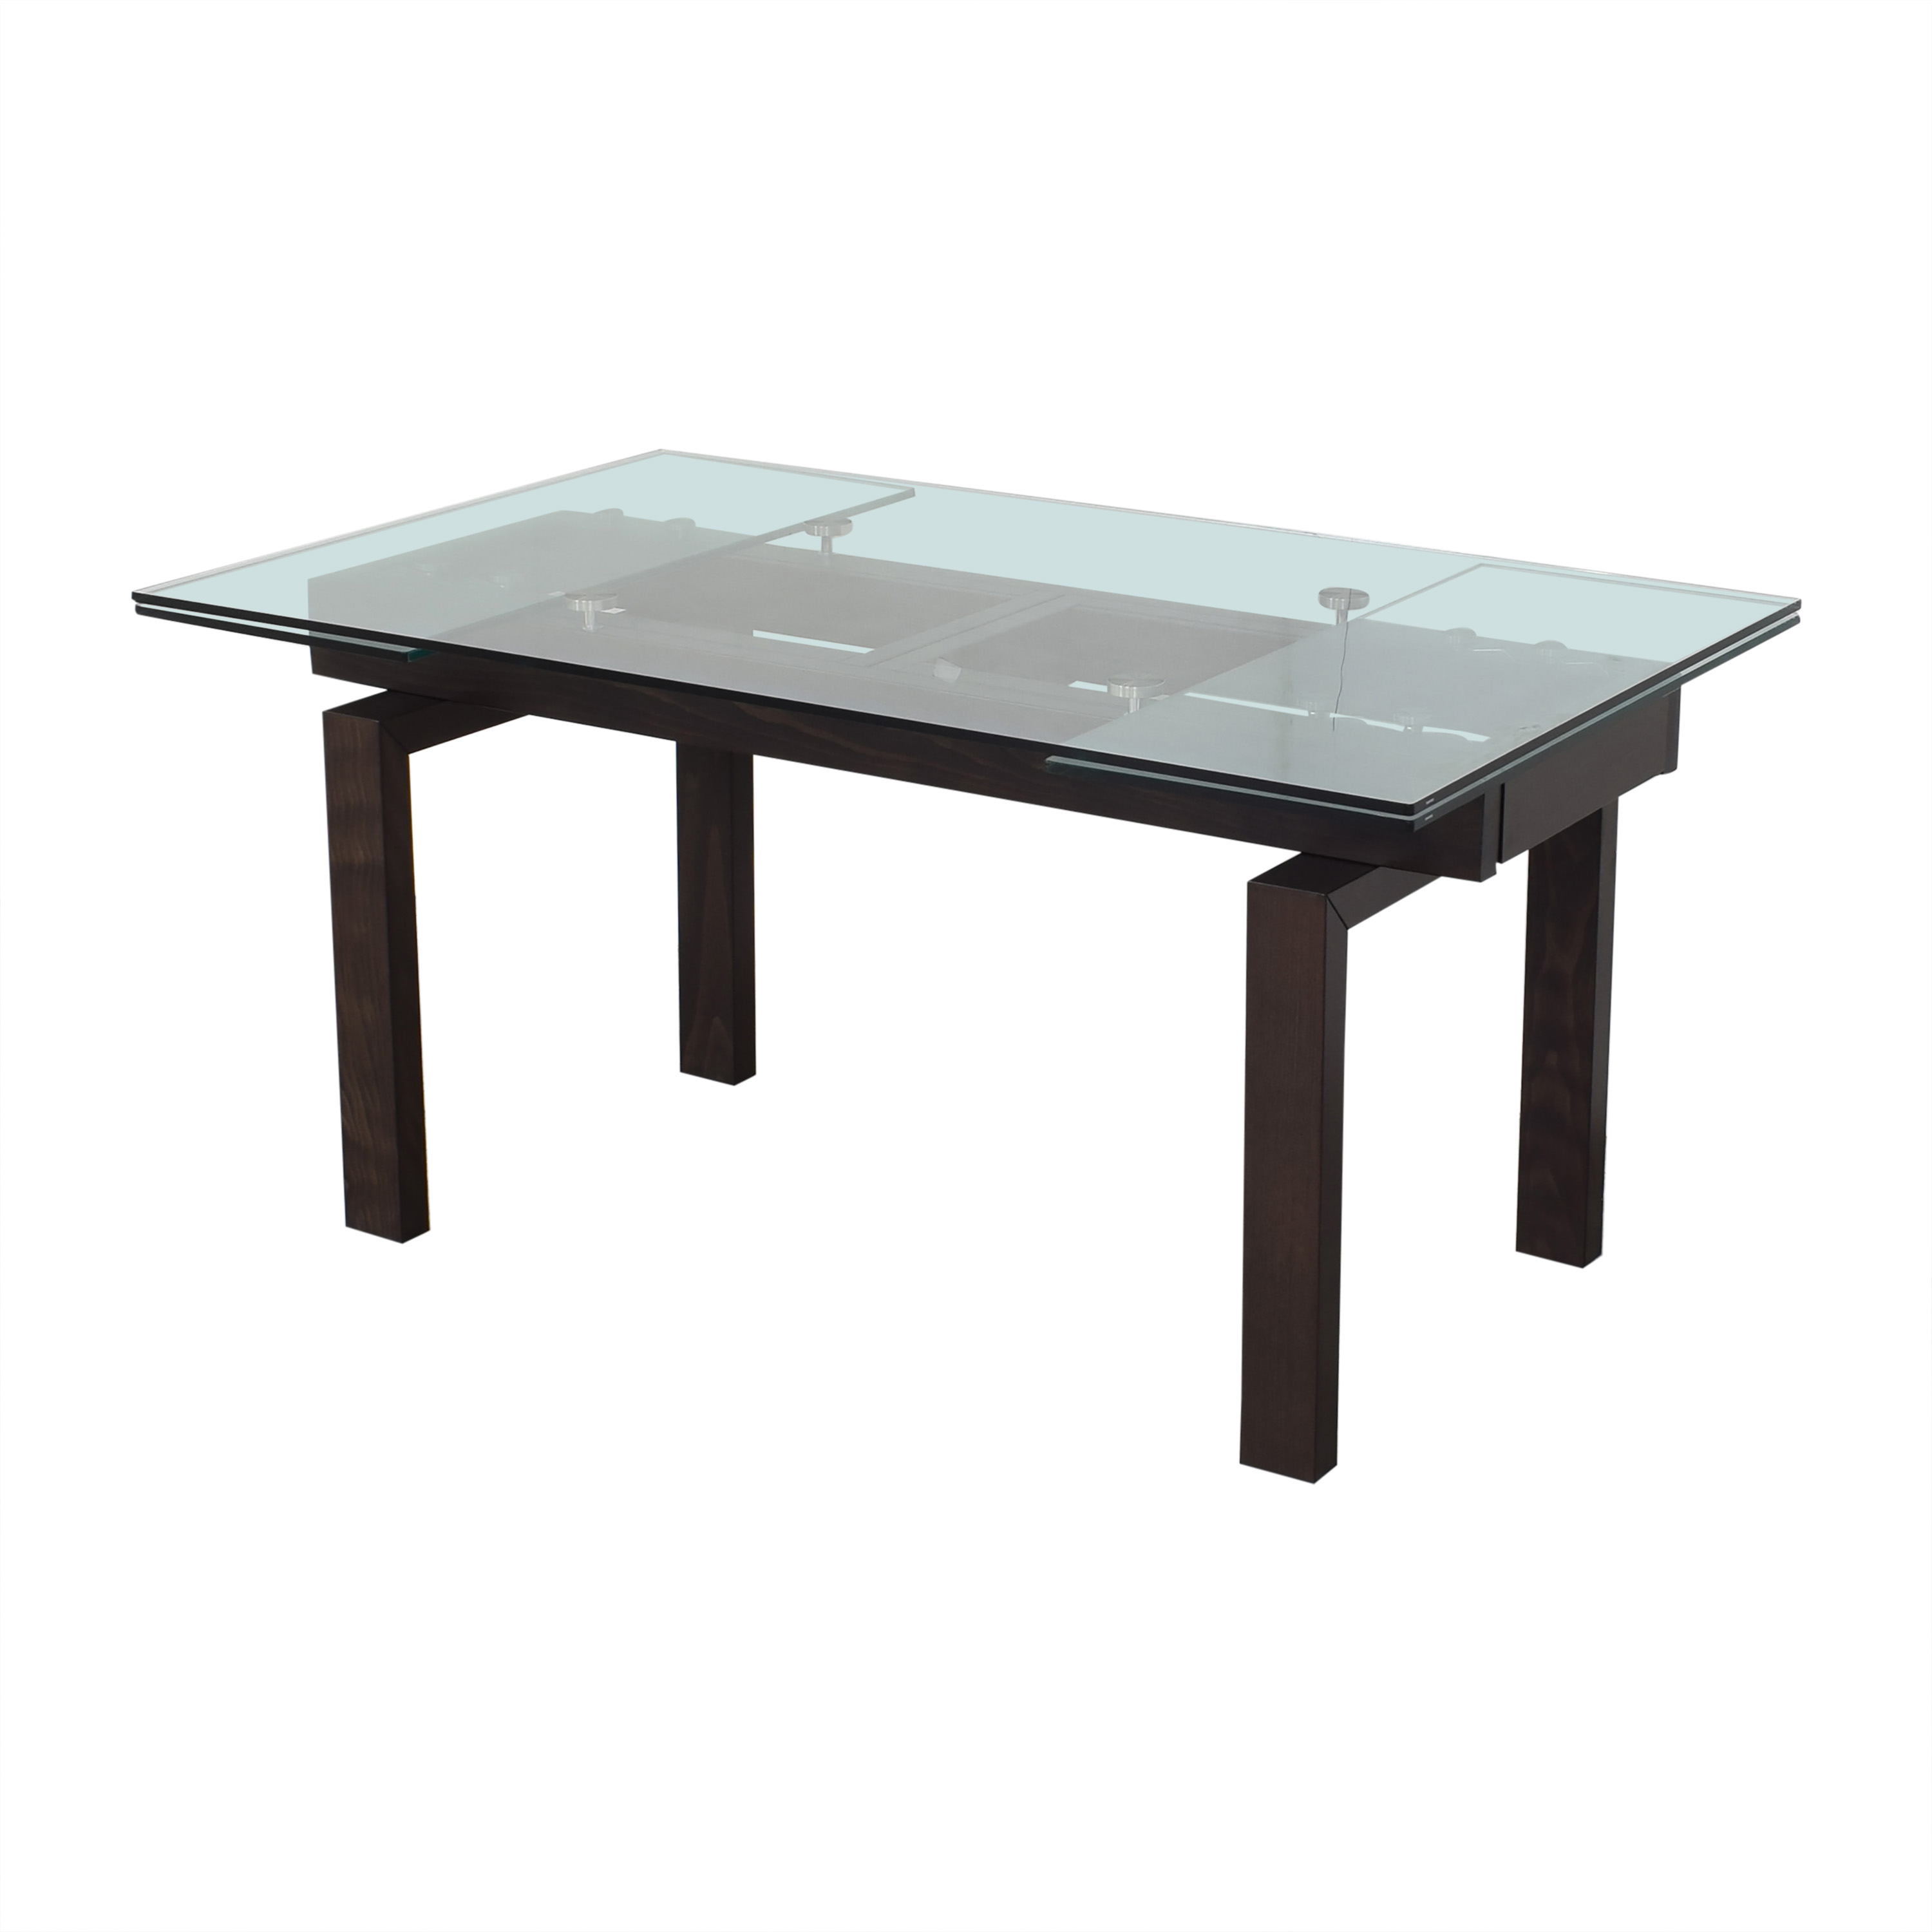 Calligaris Calligaris Hyper Extension Dining Table used